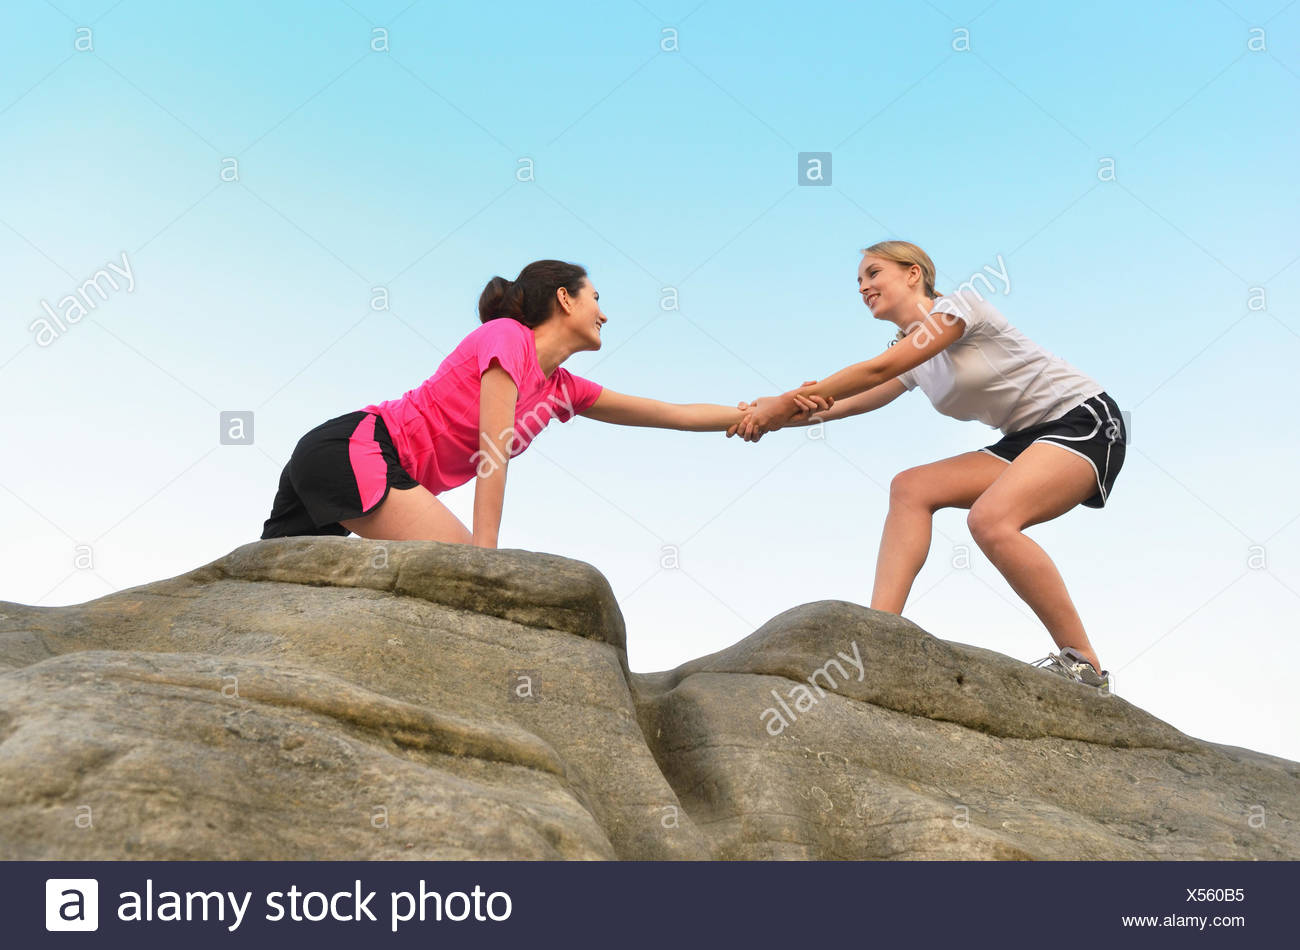 Young female runner helping friend to top of rock formation - Stock Image